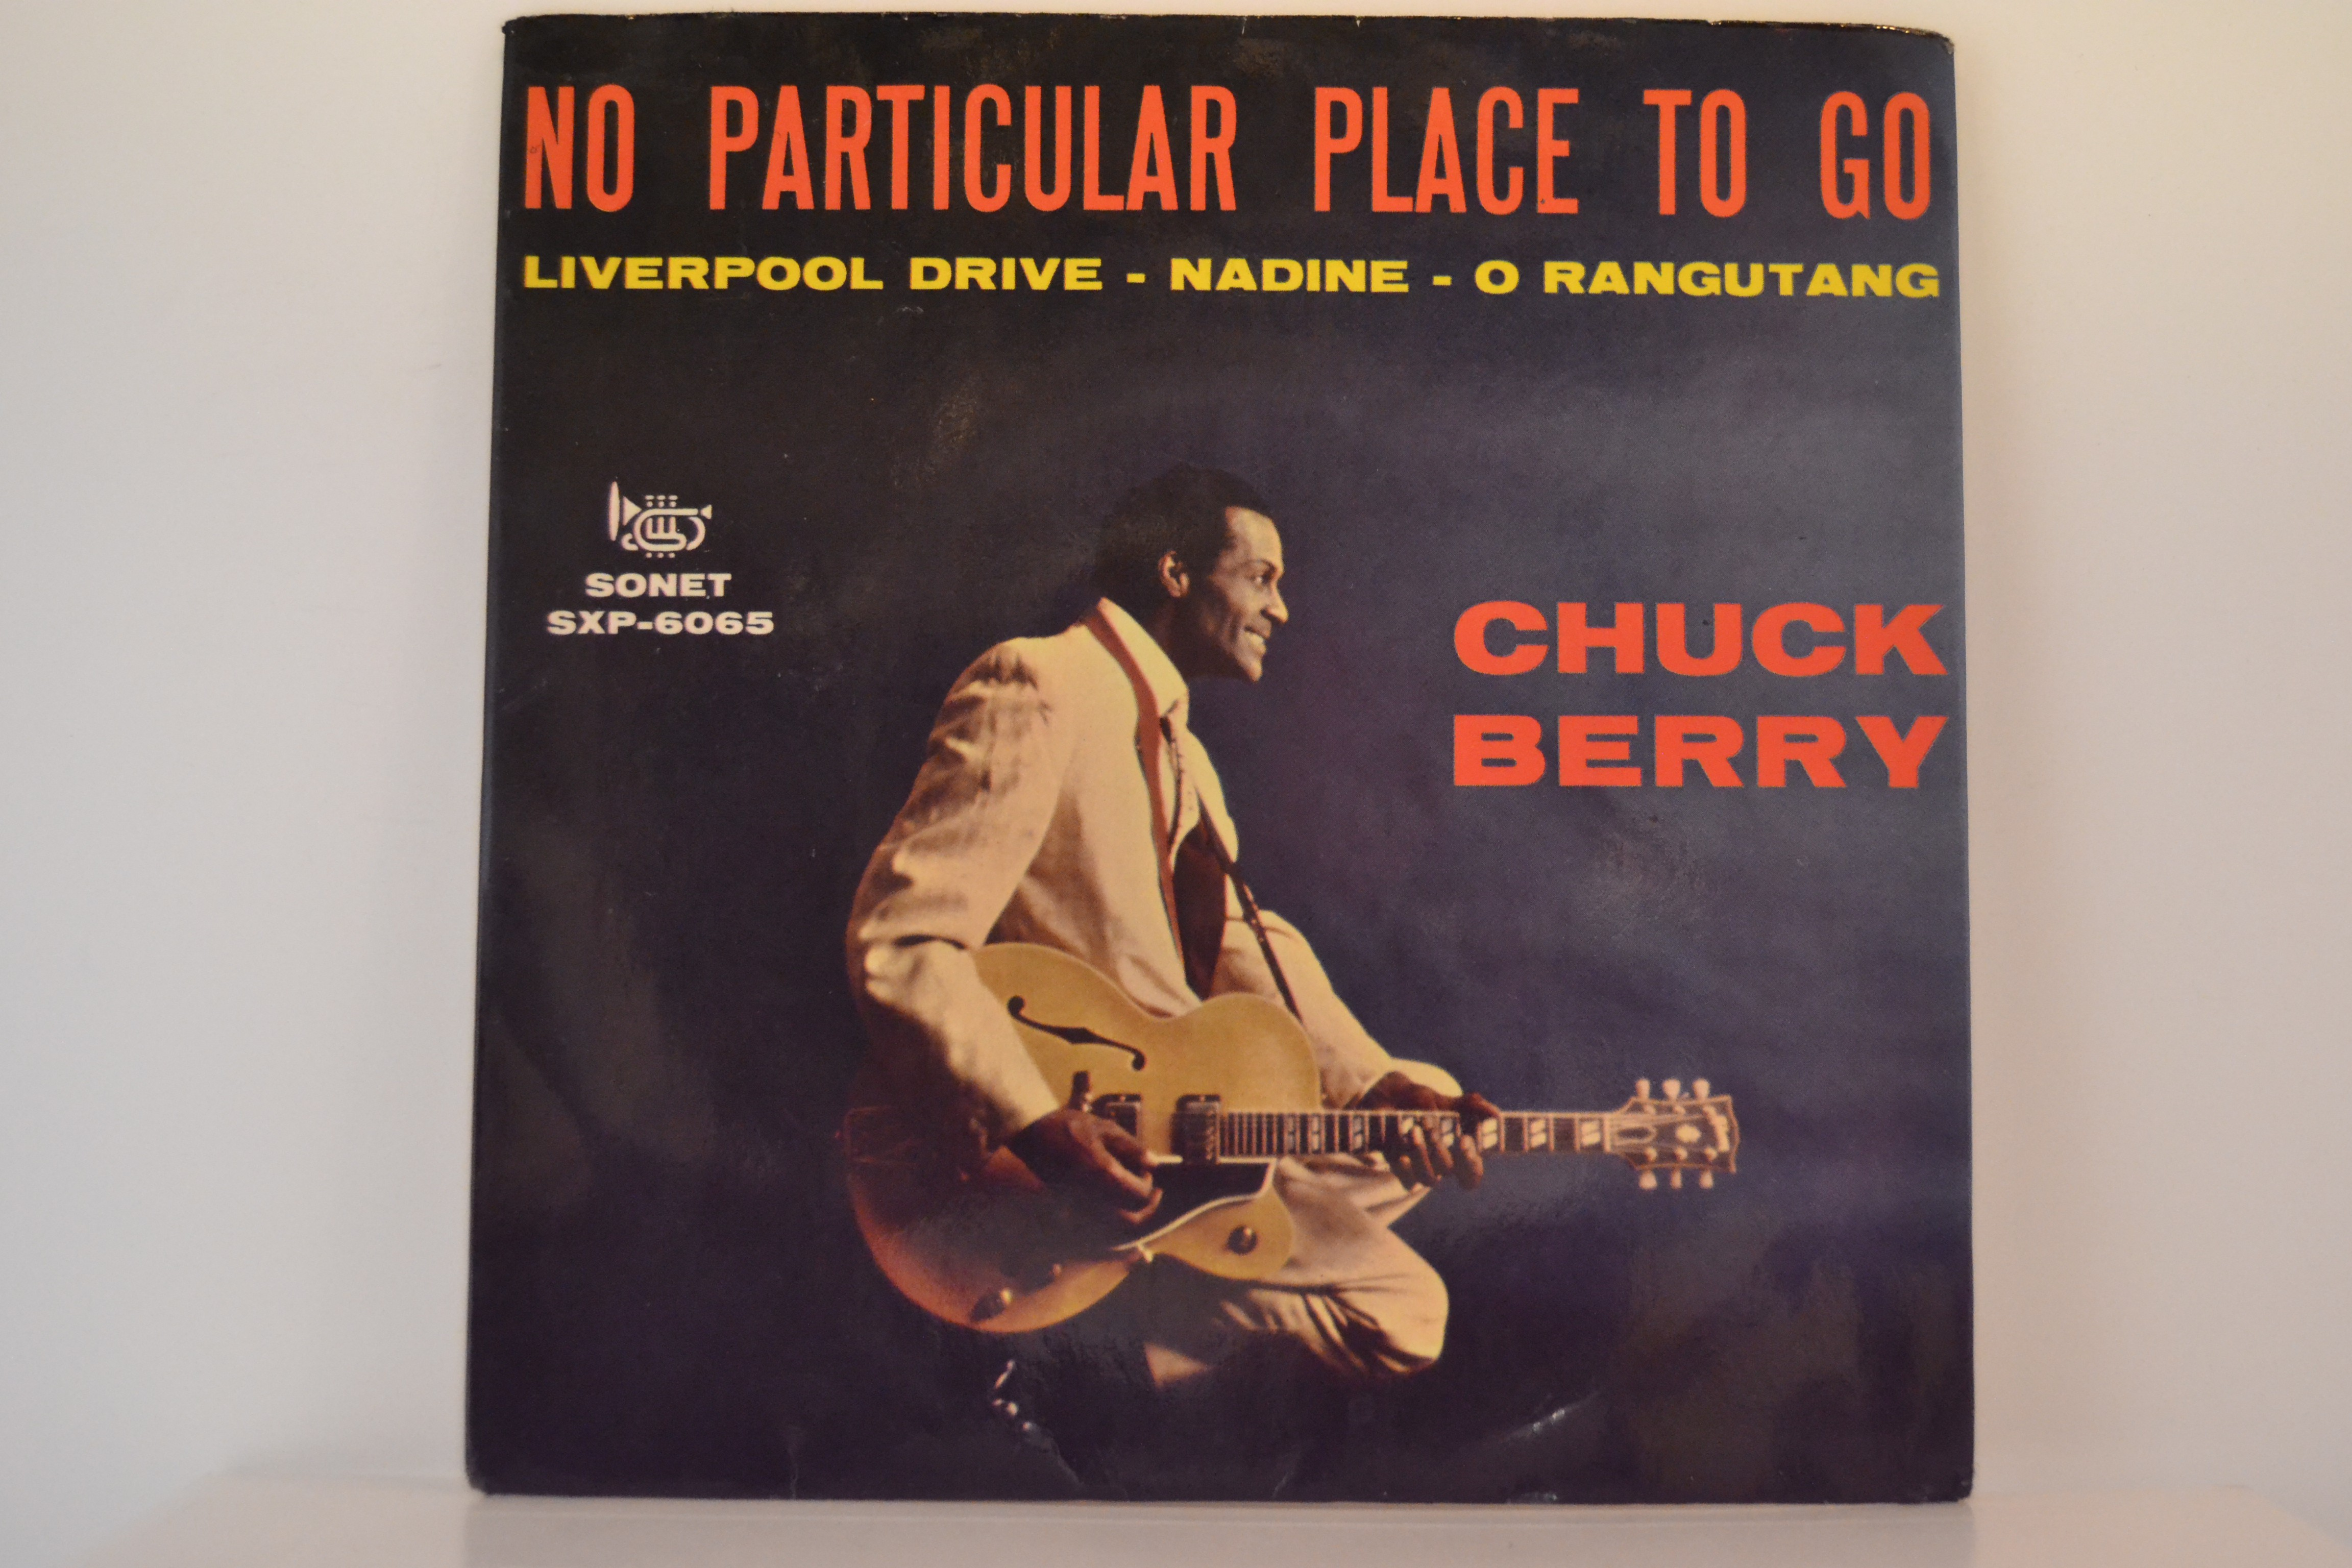 CHUCK BERRY : (EP) No particular place to go / Liverpool drive / Nadine / O rangutang